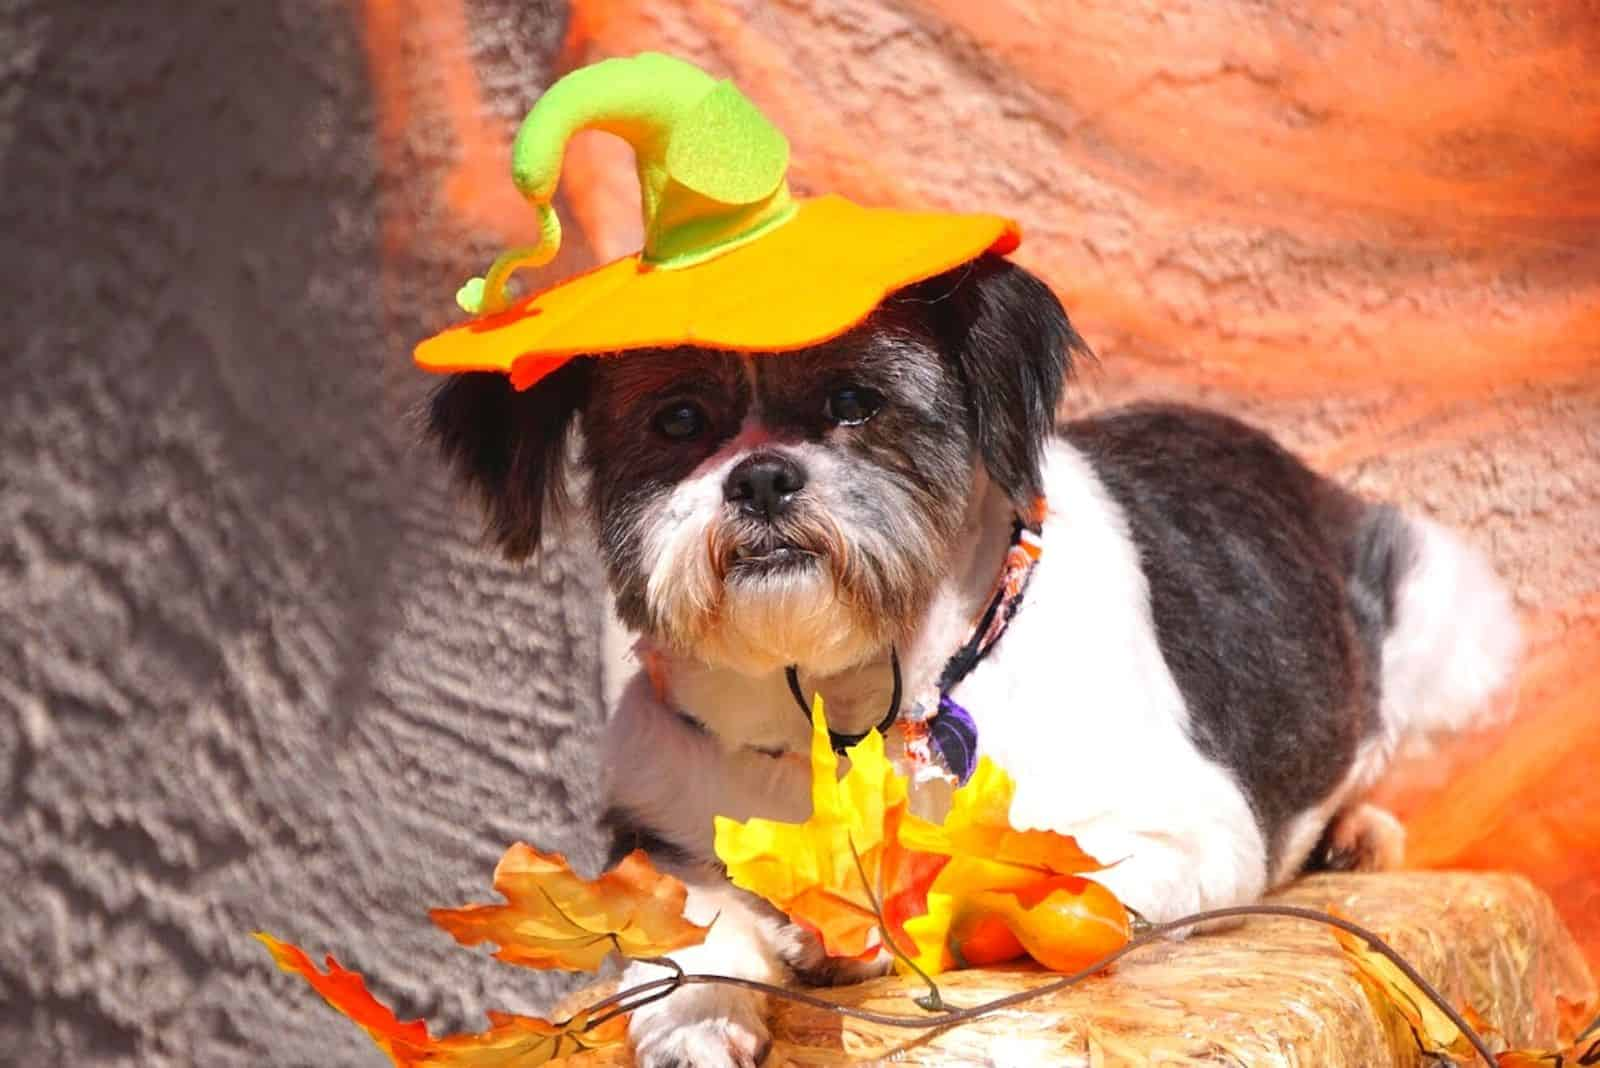 decorated shih tzu dog colored black and white ready for halloween